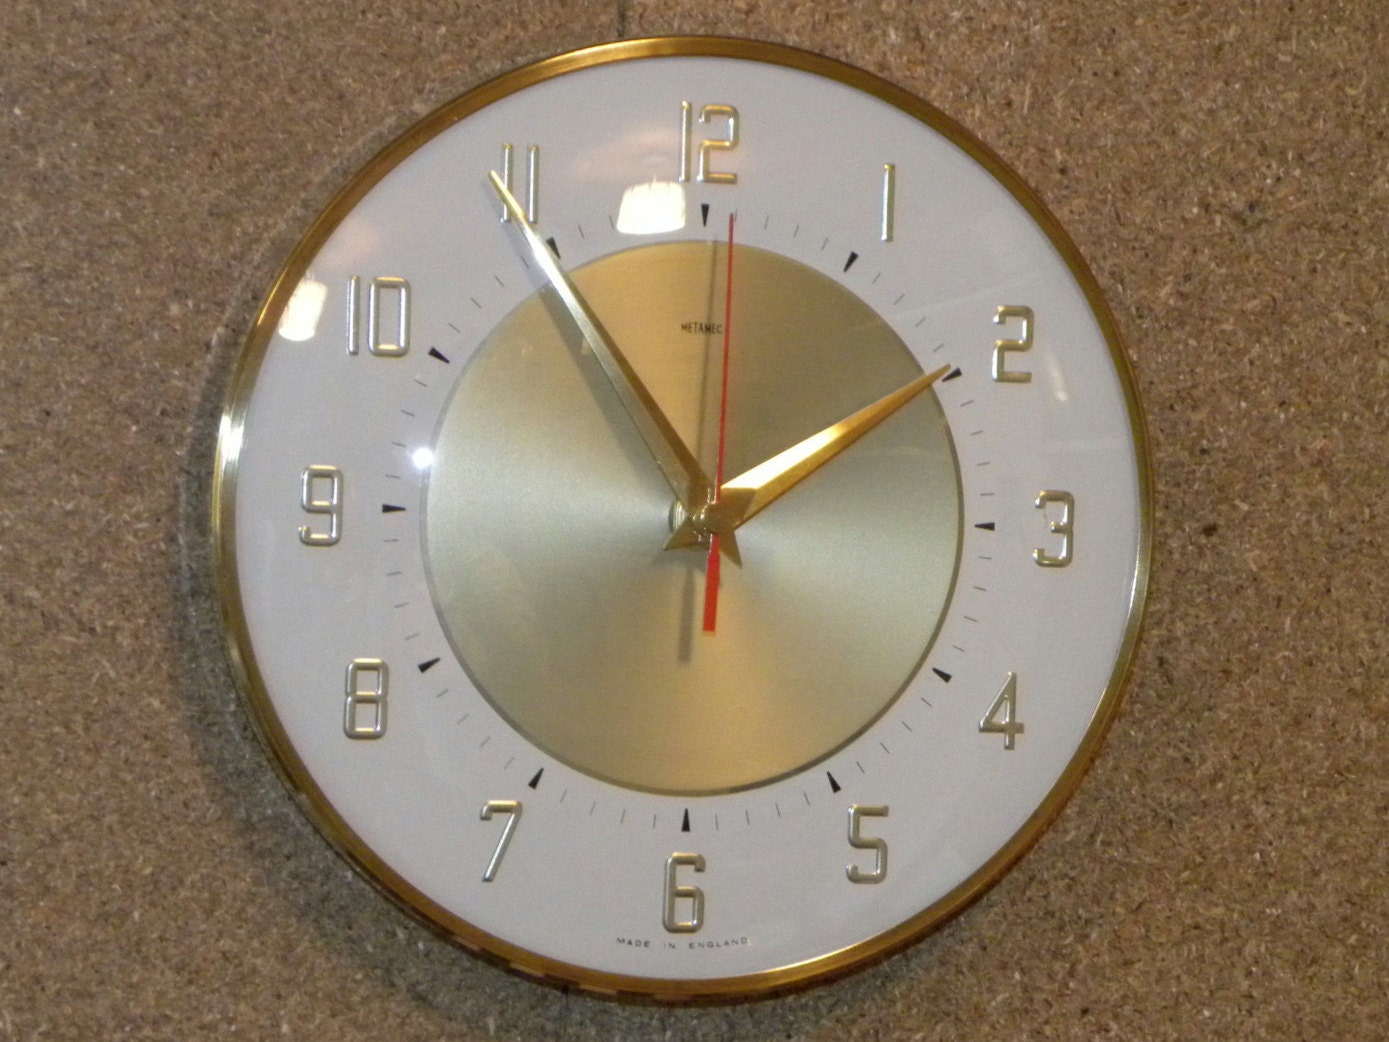 Vintage Metamec Wall Clock Battery Operated Recycled Wall